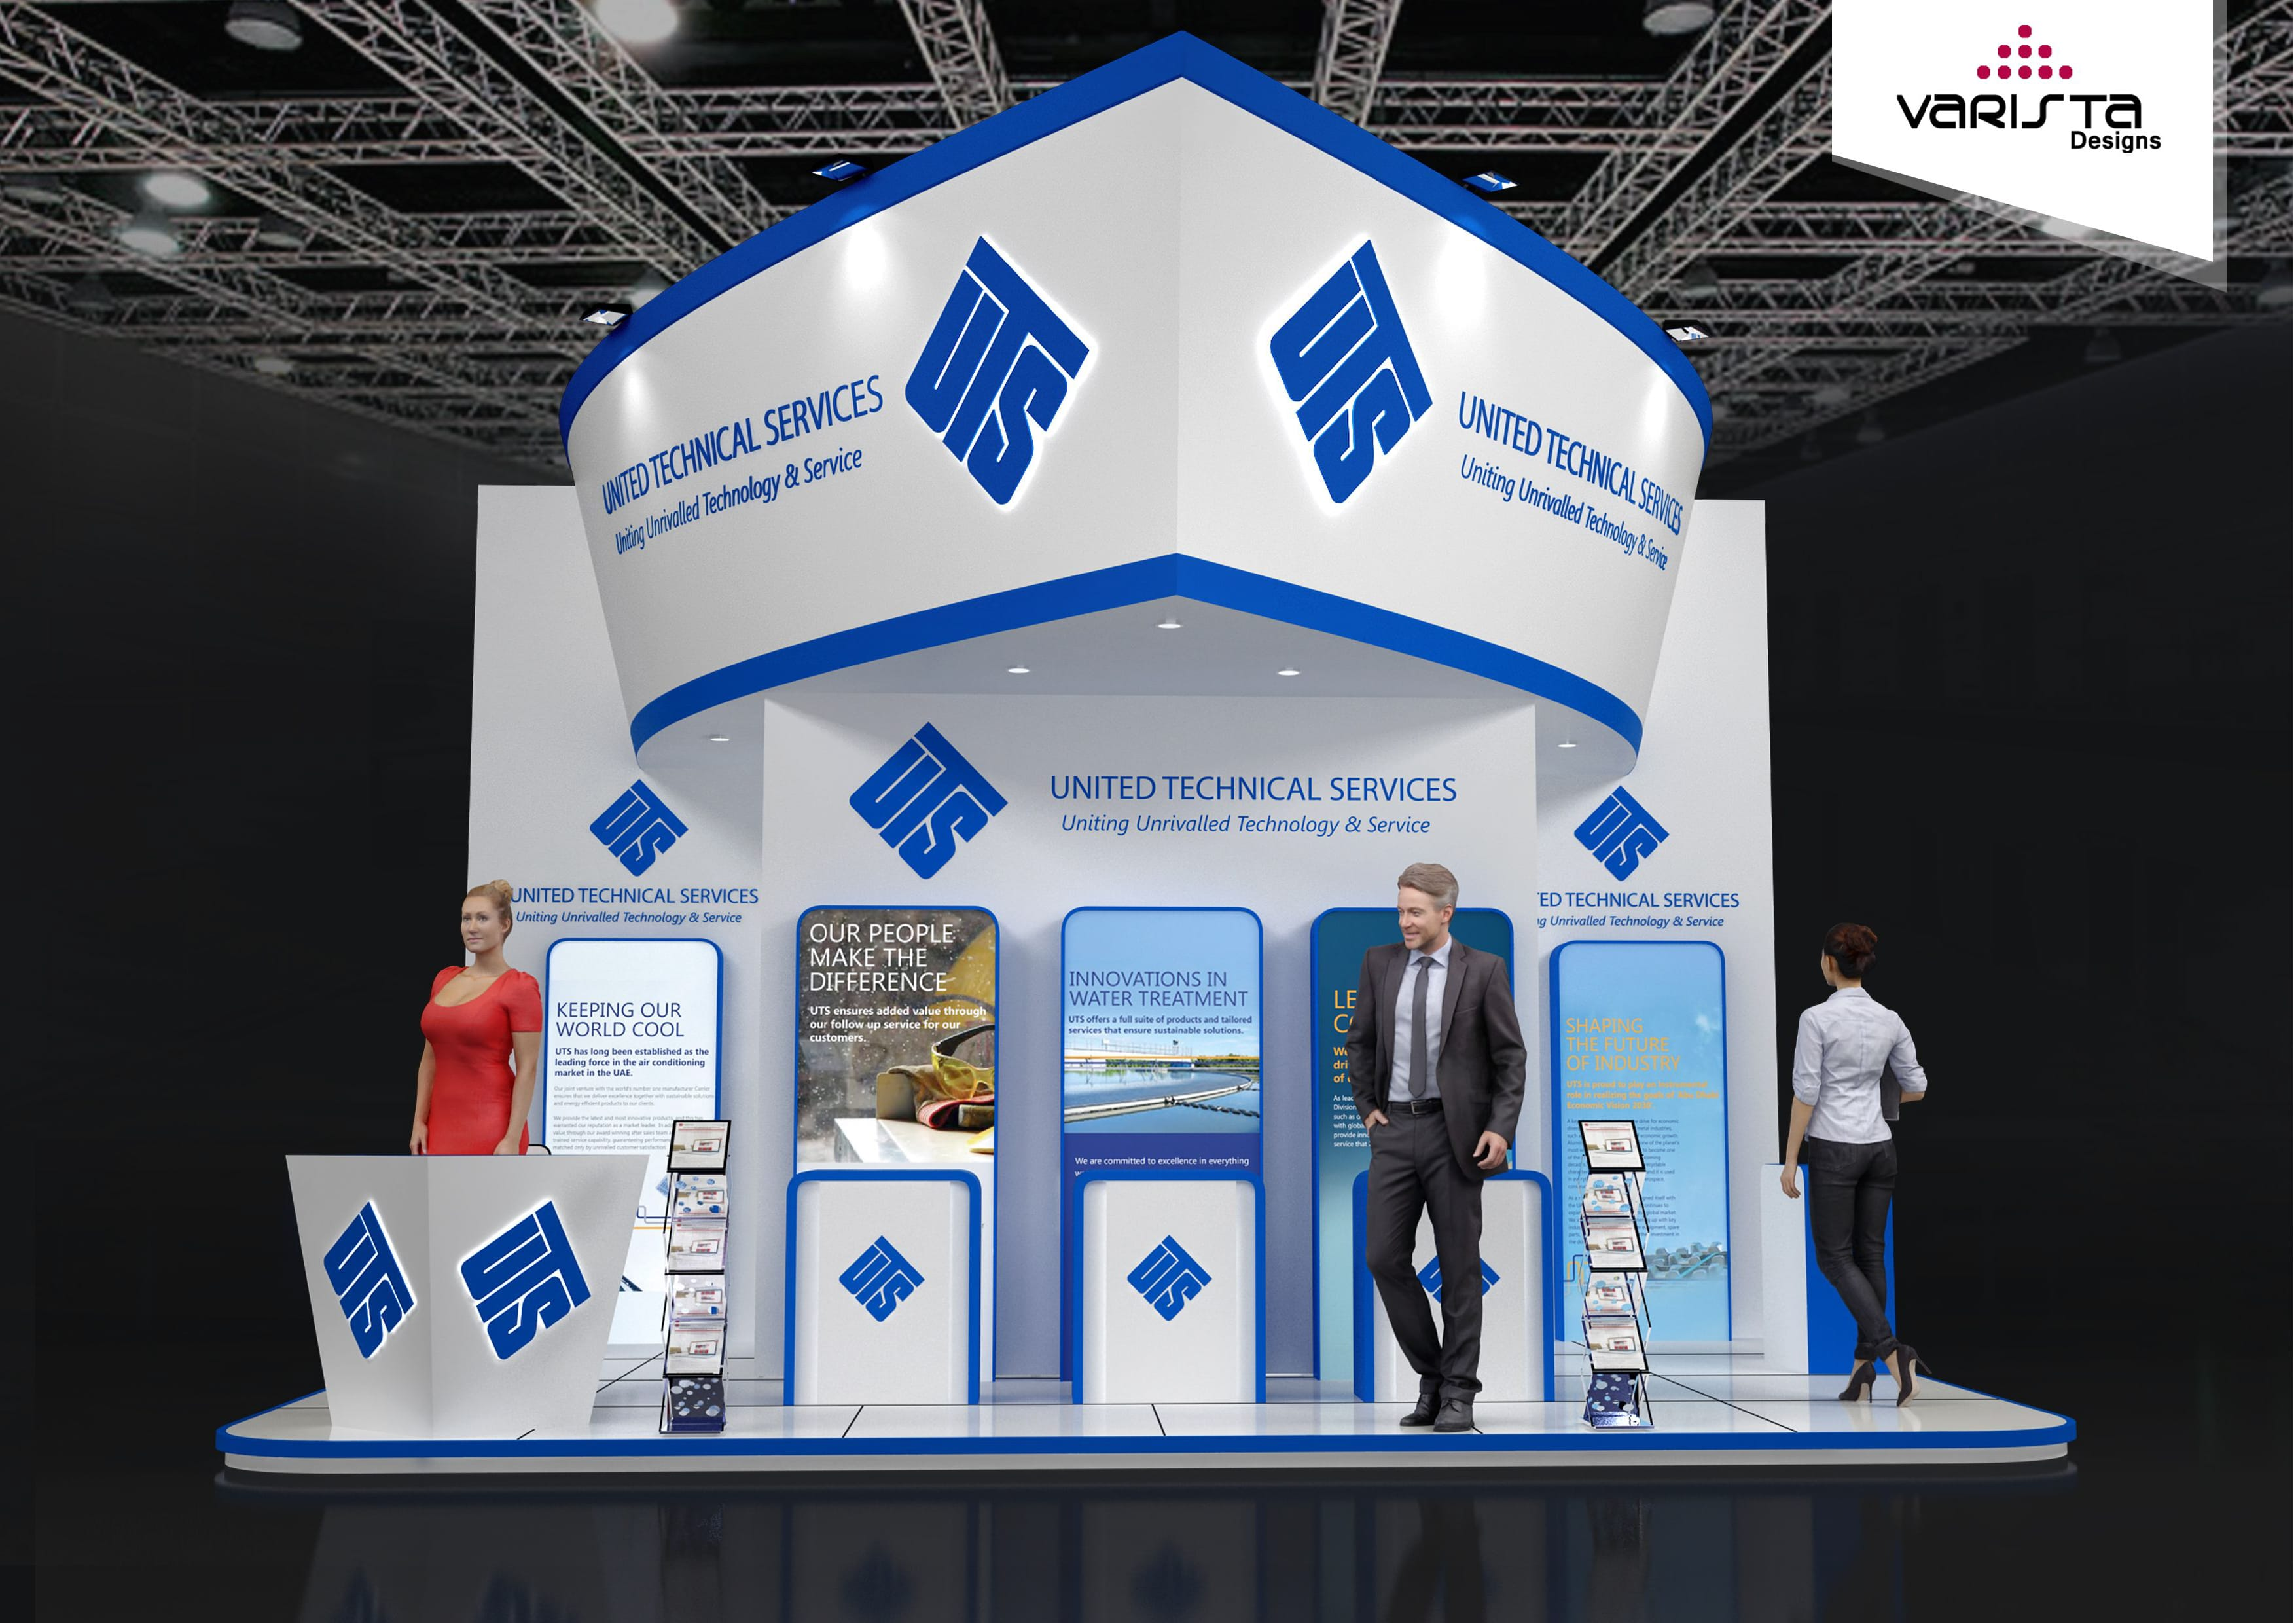 Seatrade exhibition stand for United Technical Services